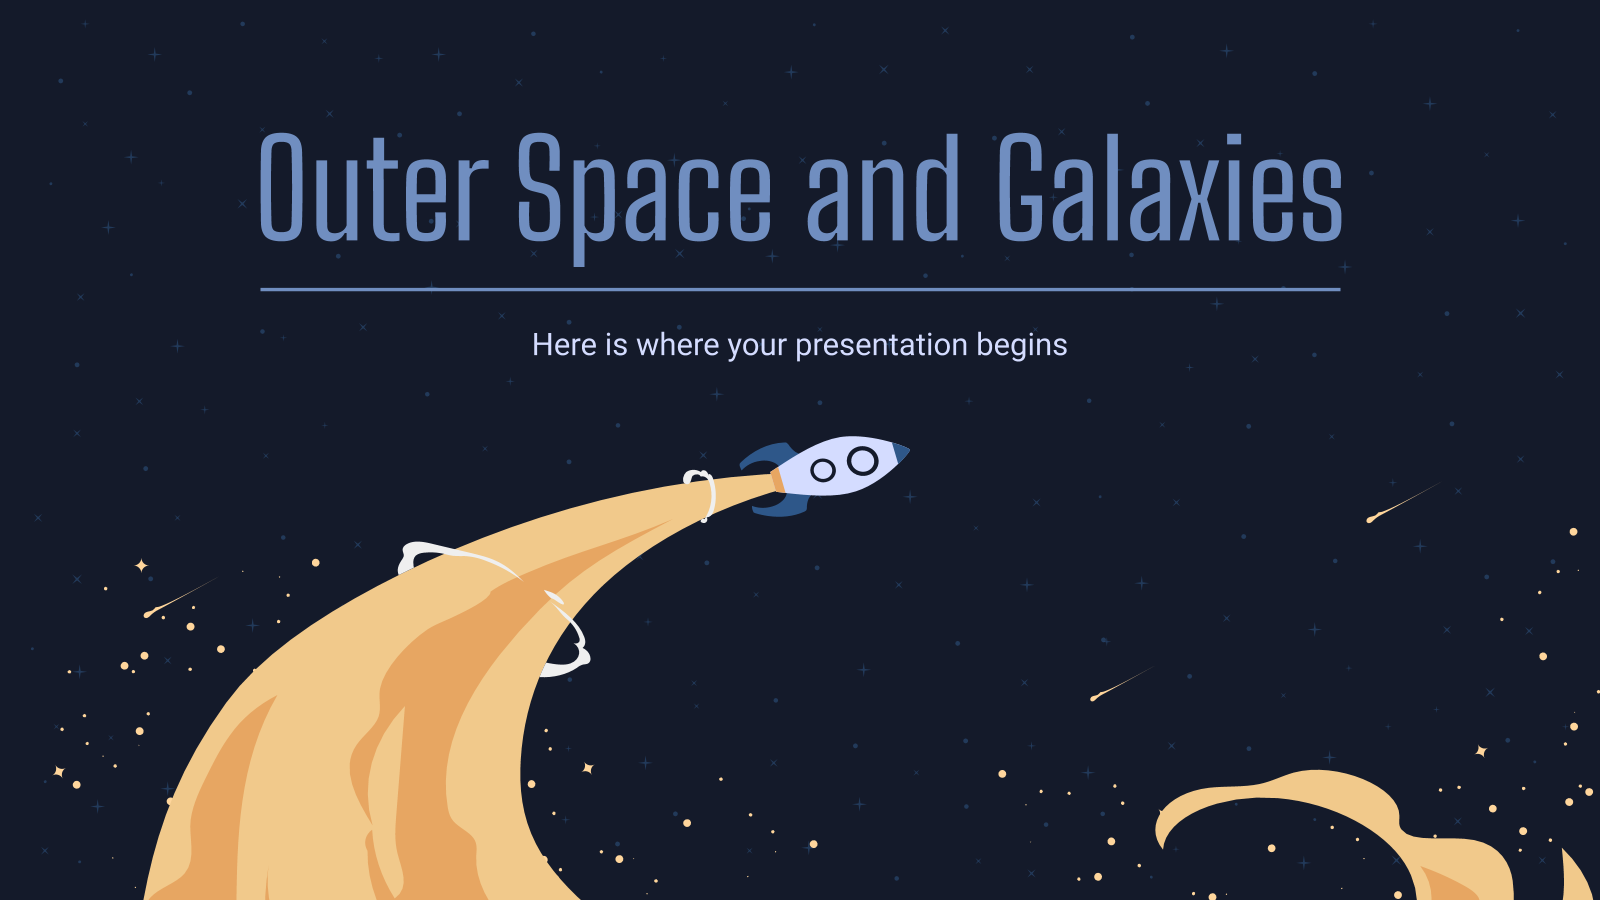 Outer Space and Galaxies presentation template